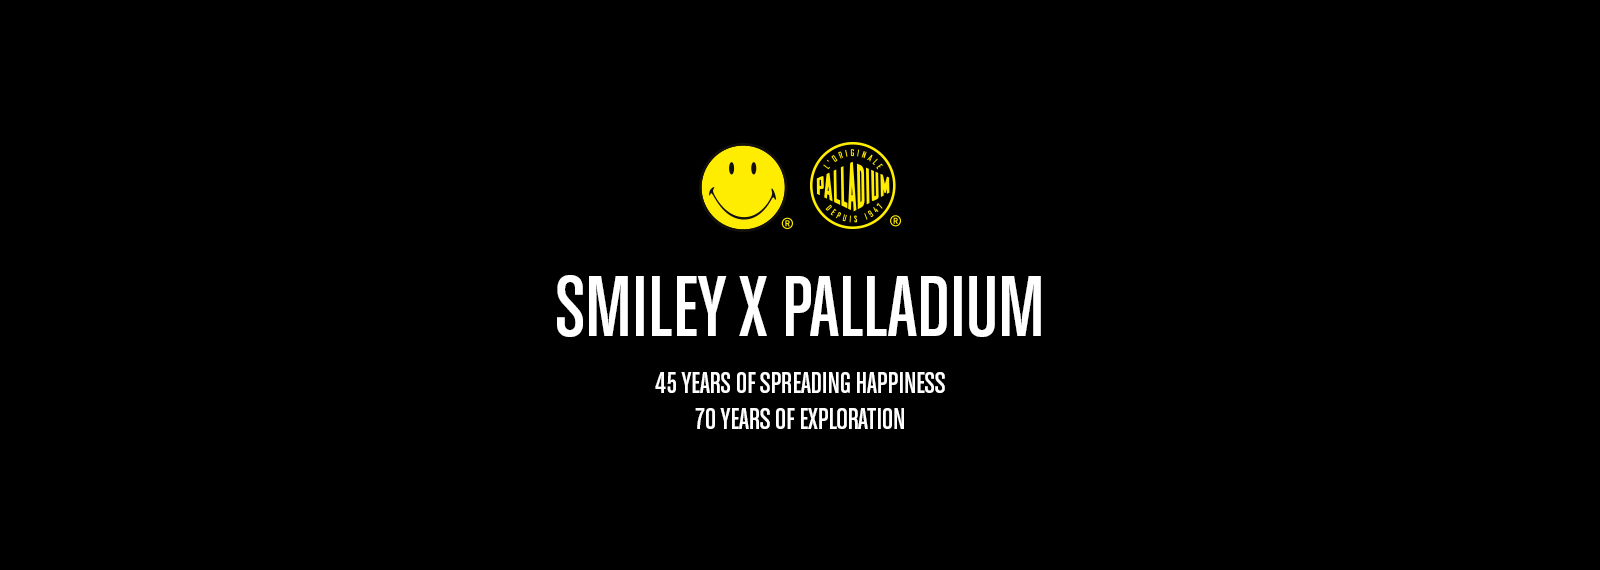 SMILEY X Palladium